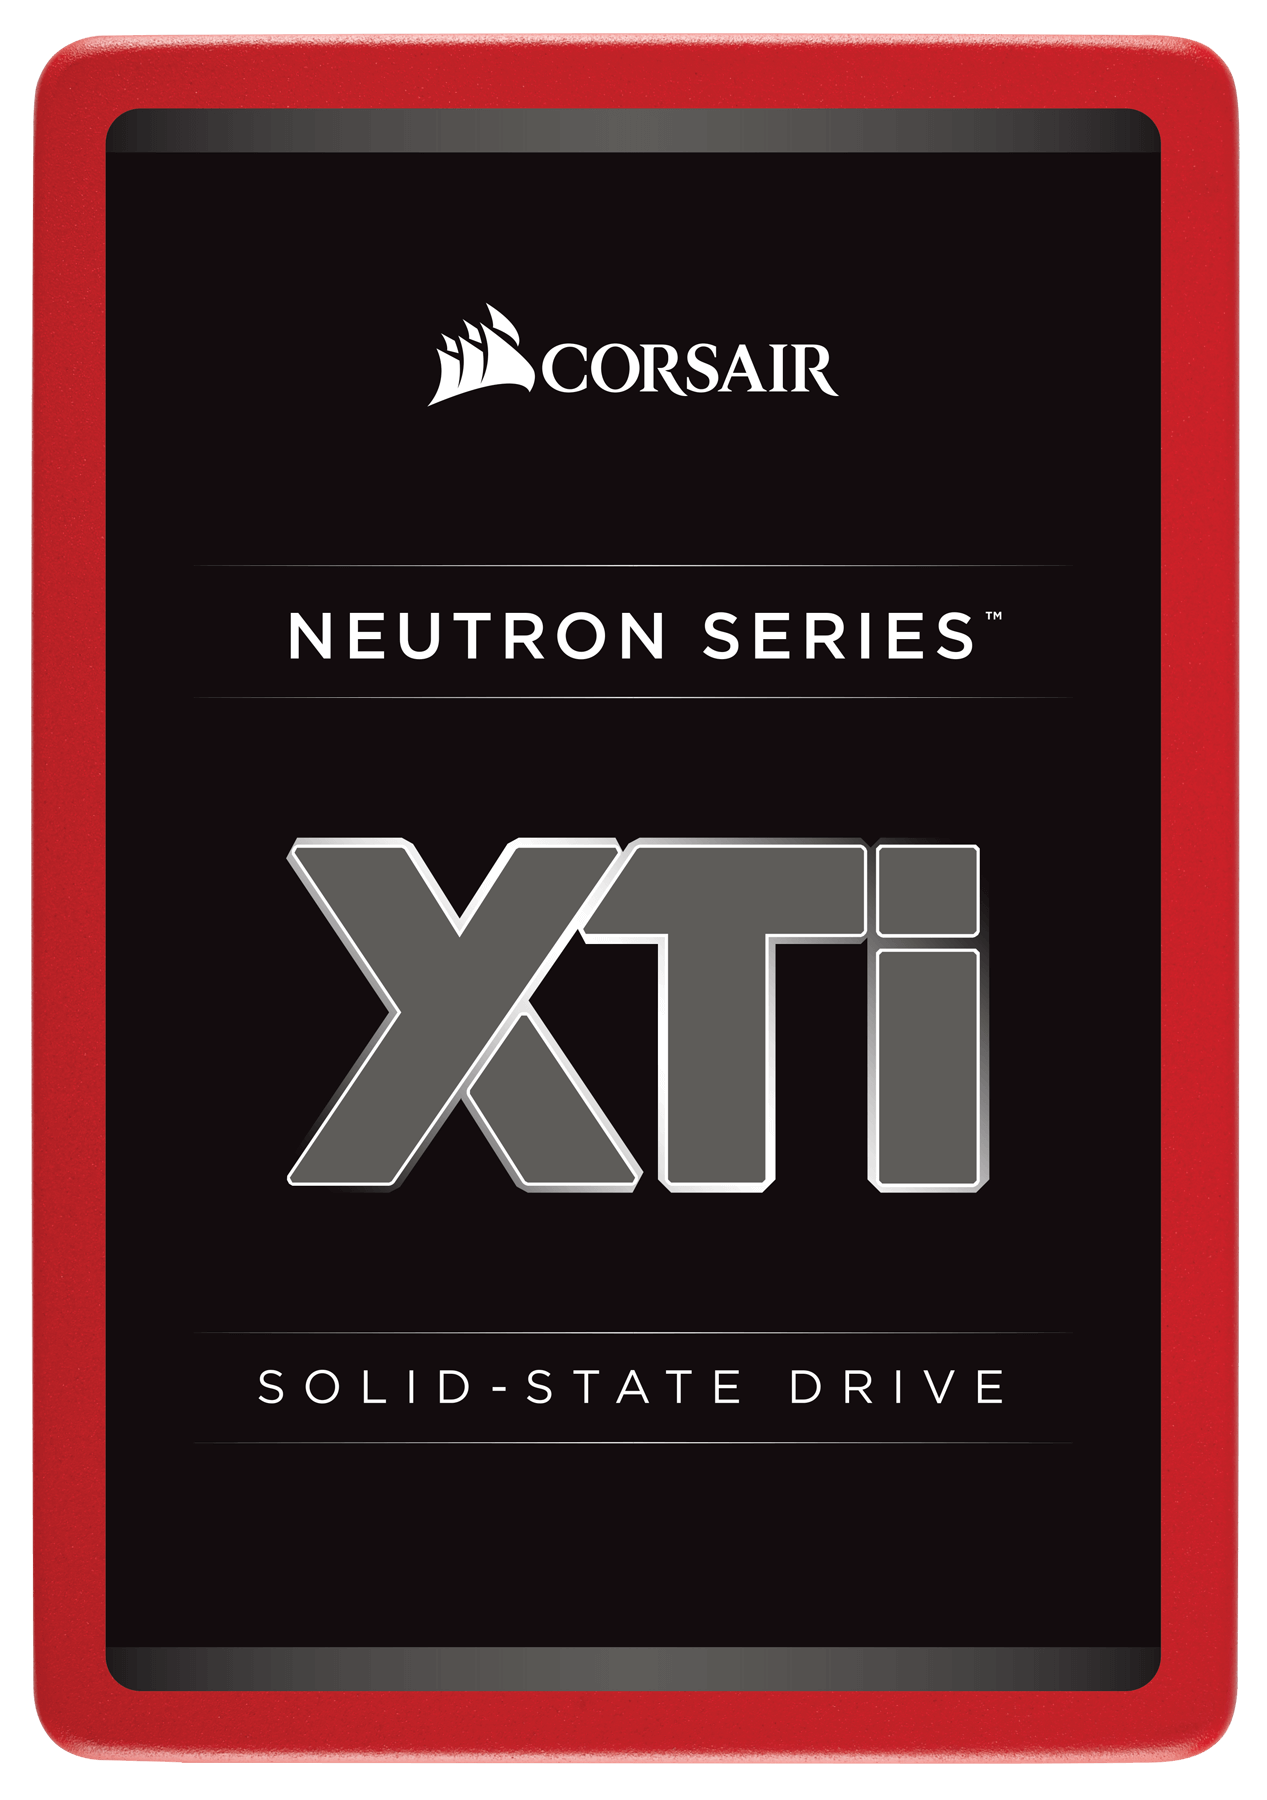 Corsair CSSD-N240GBXTi 240Gb Neutron XTi series 2.5  SATA6G SSD , with DEVSLP (Device Sleep) technology for energy saving Enhanced , Error Correction ( SmartECCSmartRefresh )  with Power loss protection ( SmartFlushGuaranteedFlush technologies ) , AES-256